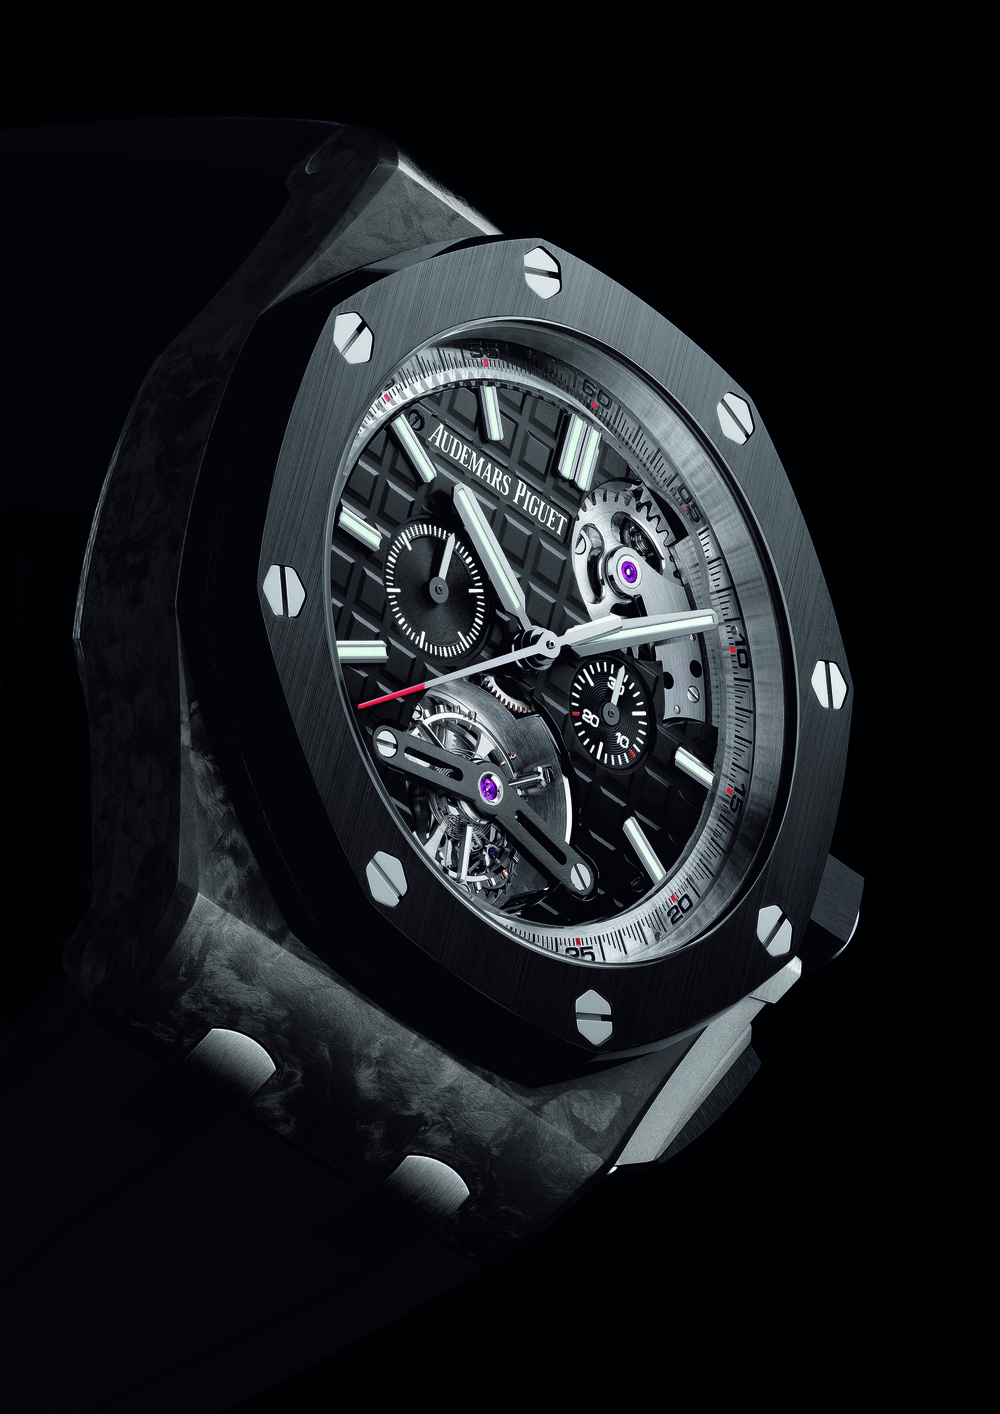 The AP Royal Oak Offshore Selfwinding Tourbillon Chronograph